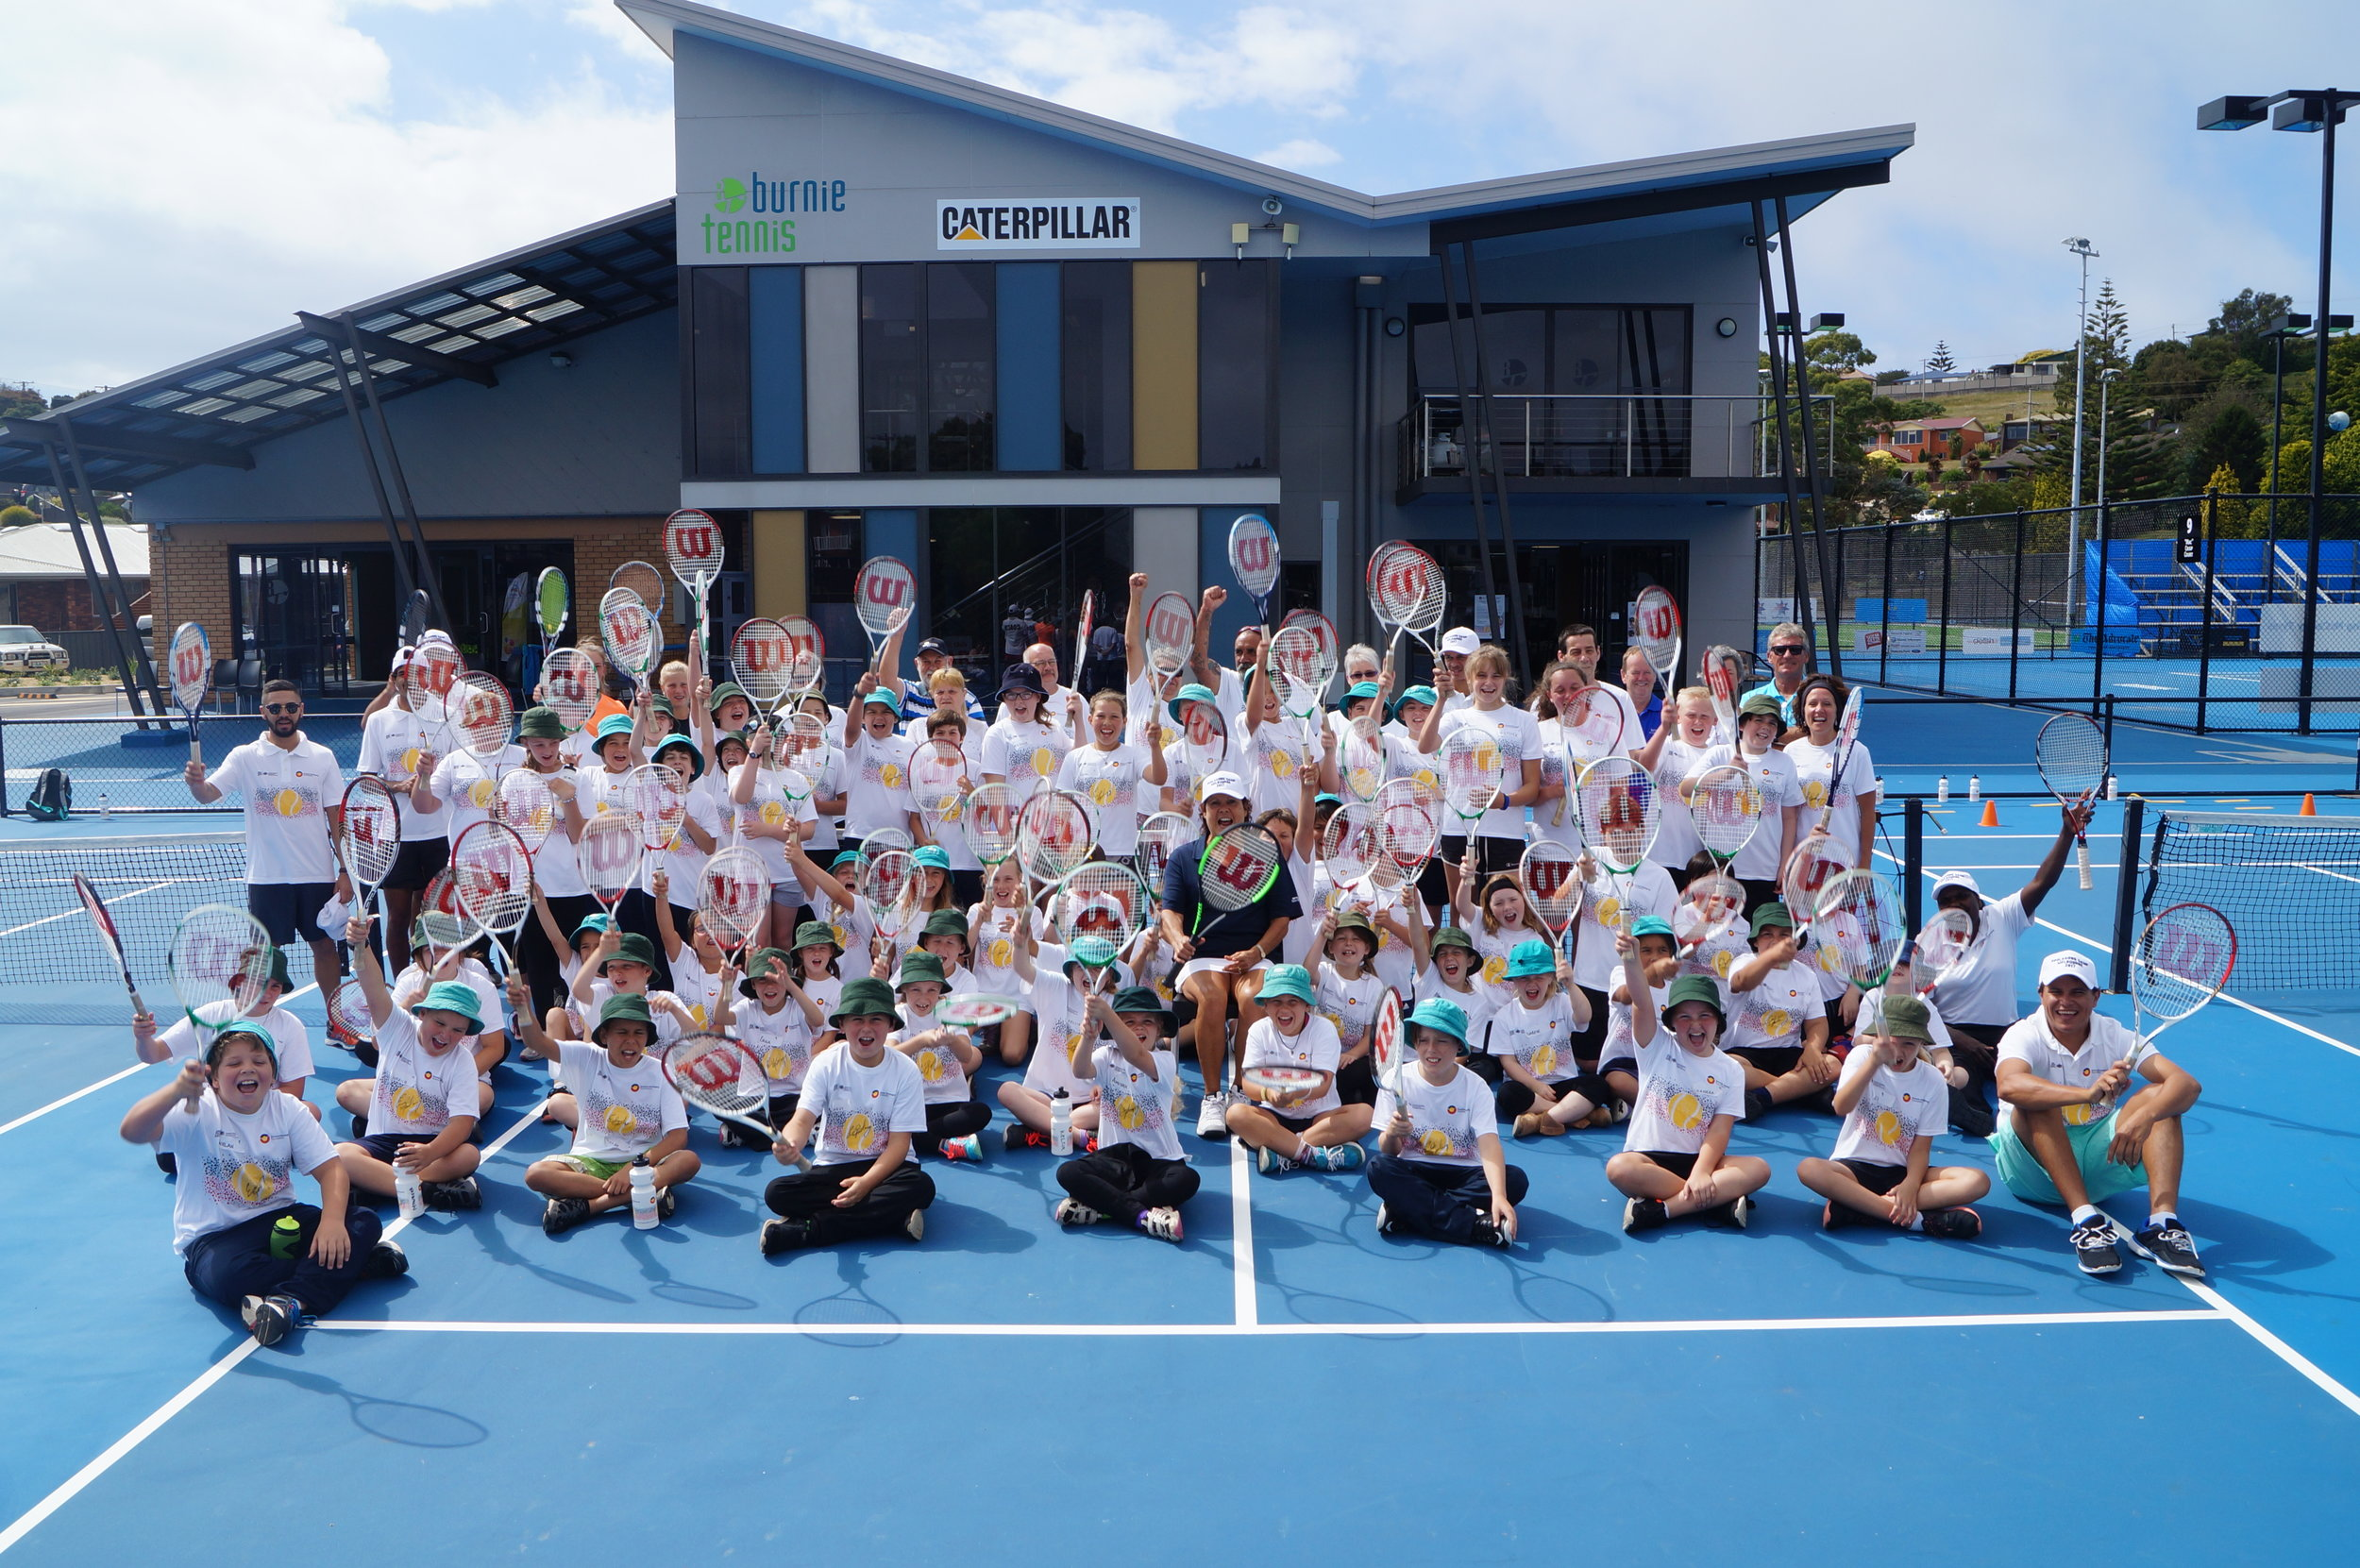 A BIG thanks to Danny and Chris and all at Burnie Tennis for hosting a wonderful day, our first in Burnie!